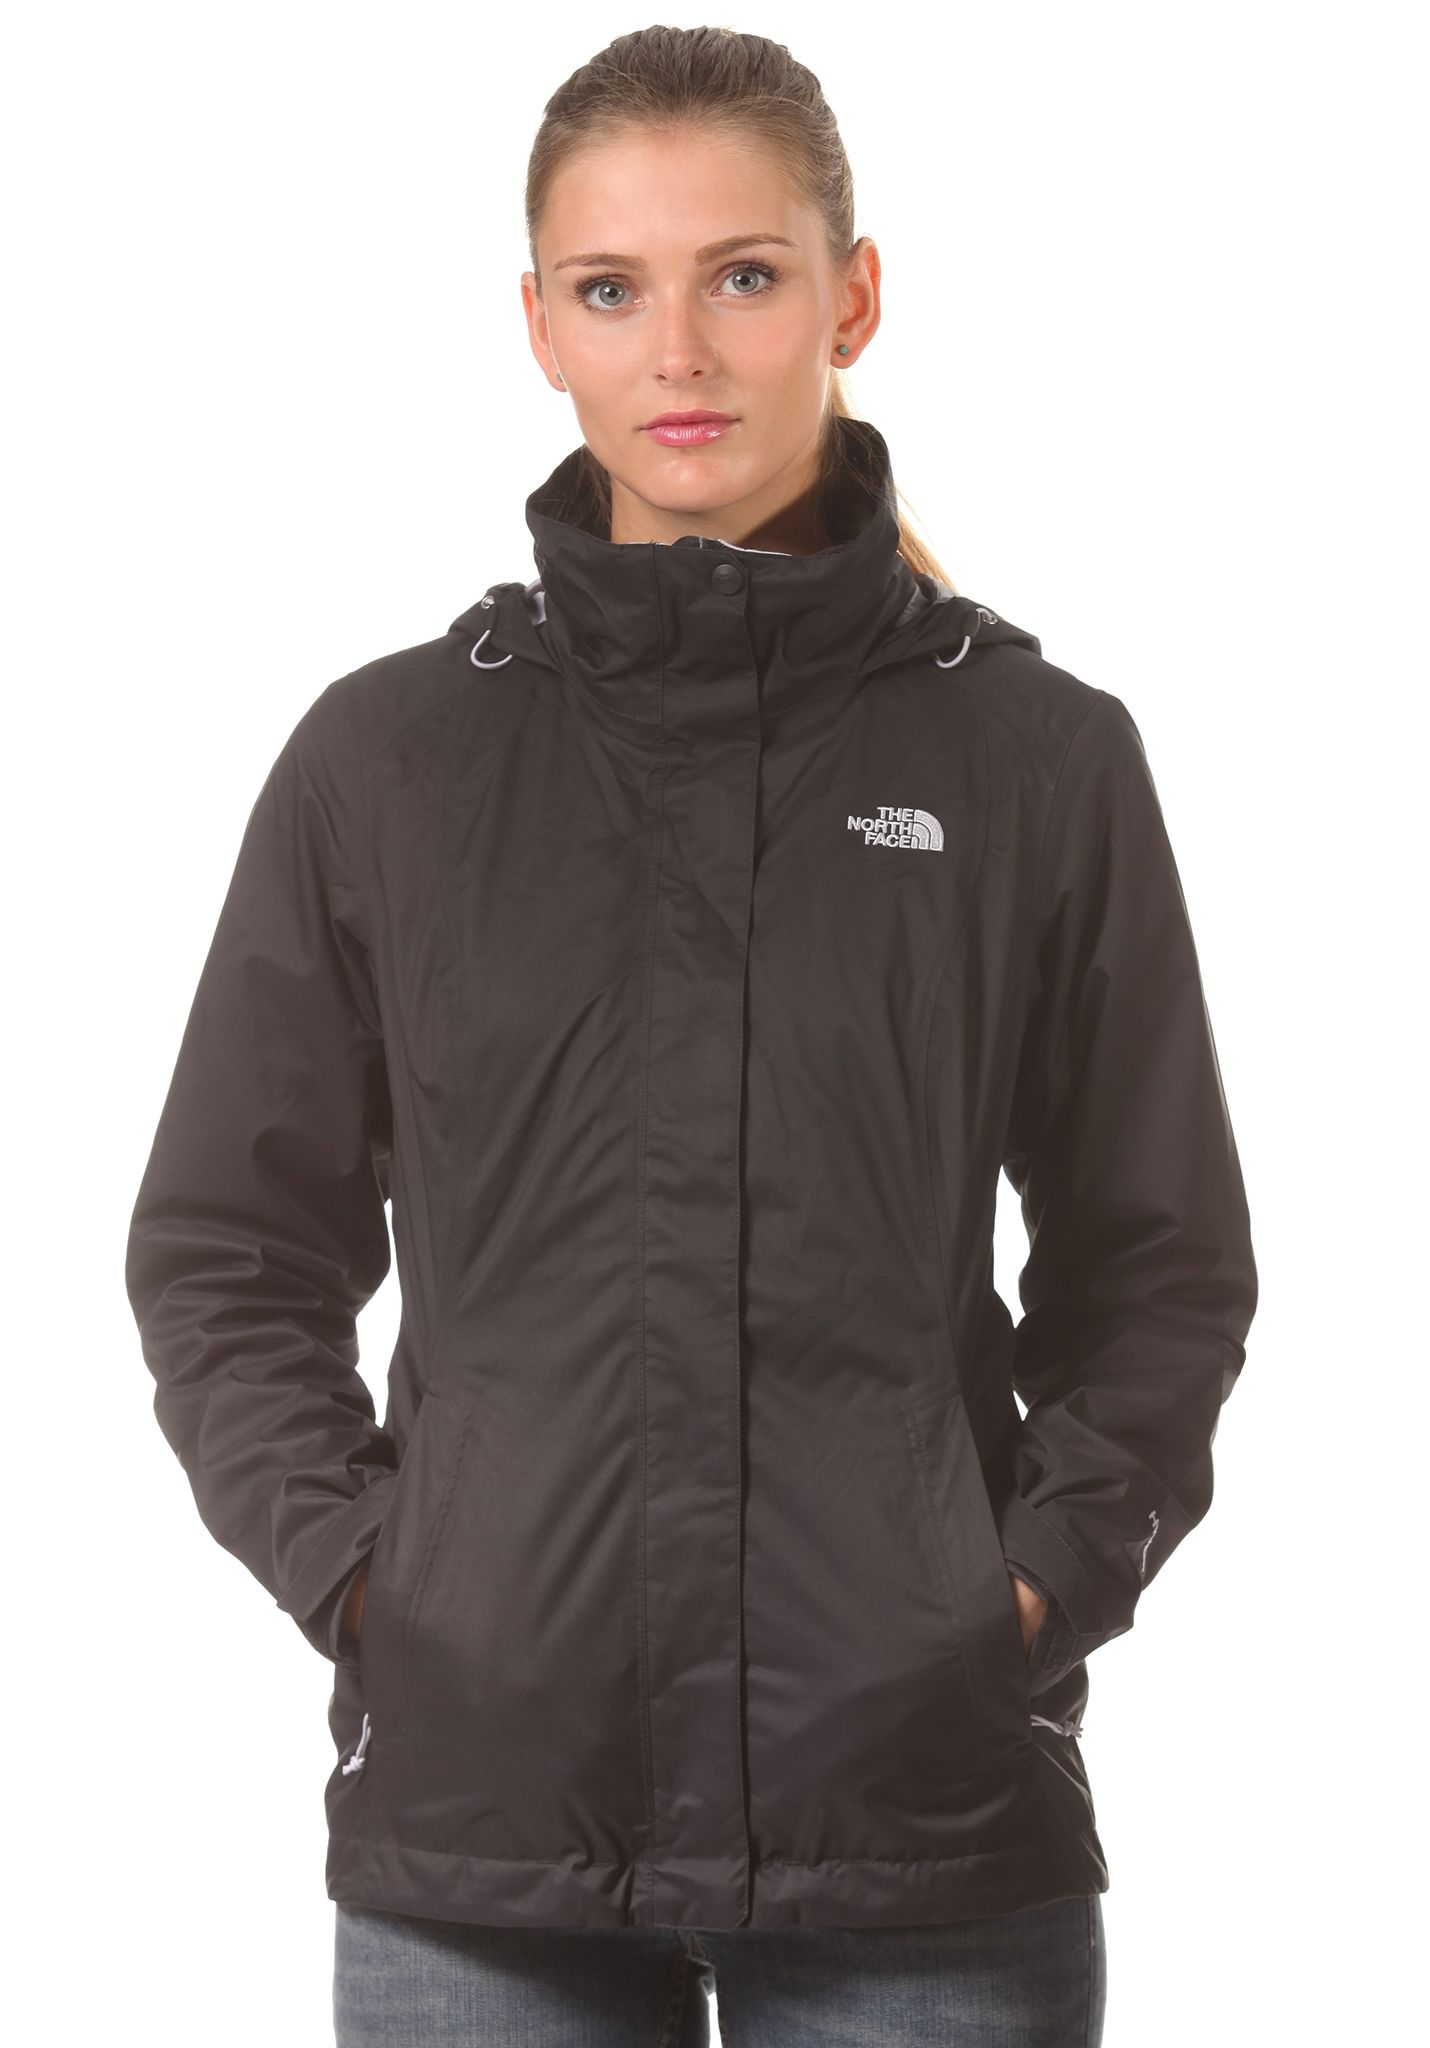 THE NORTH FACE Evolve II Triclimate - Giacca tecnica per Donna - Nero -  Planet Sports e035babebcb6